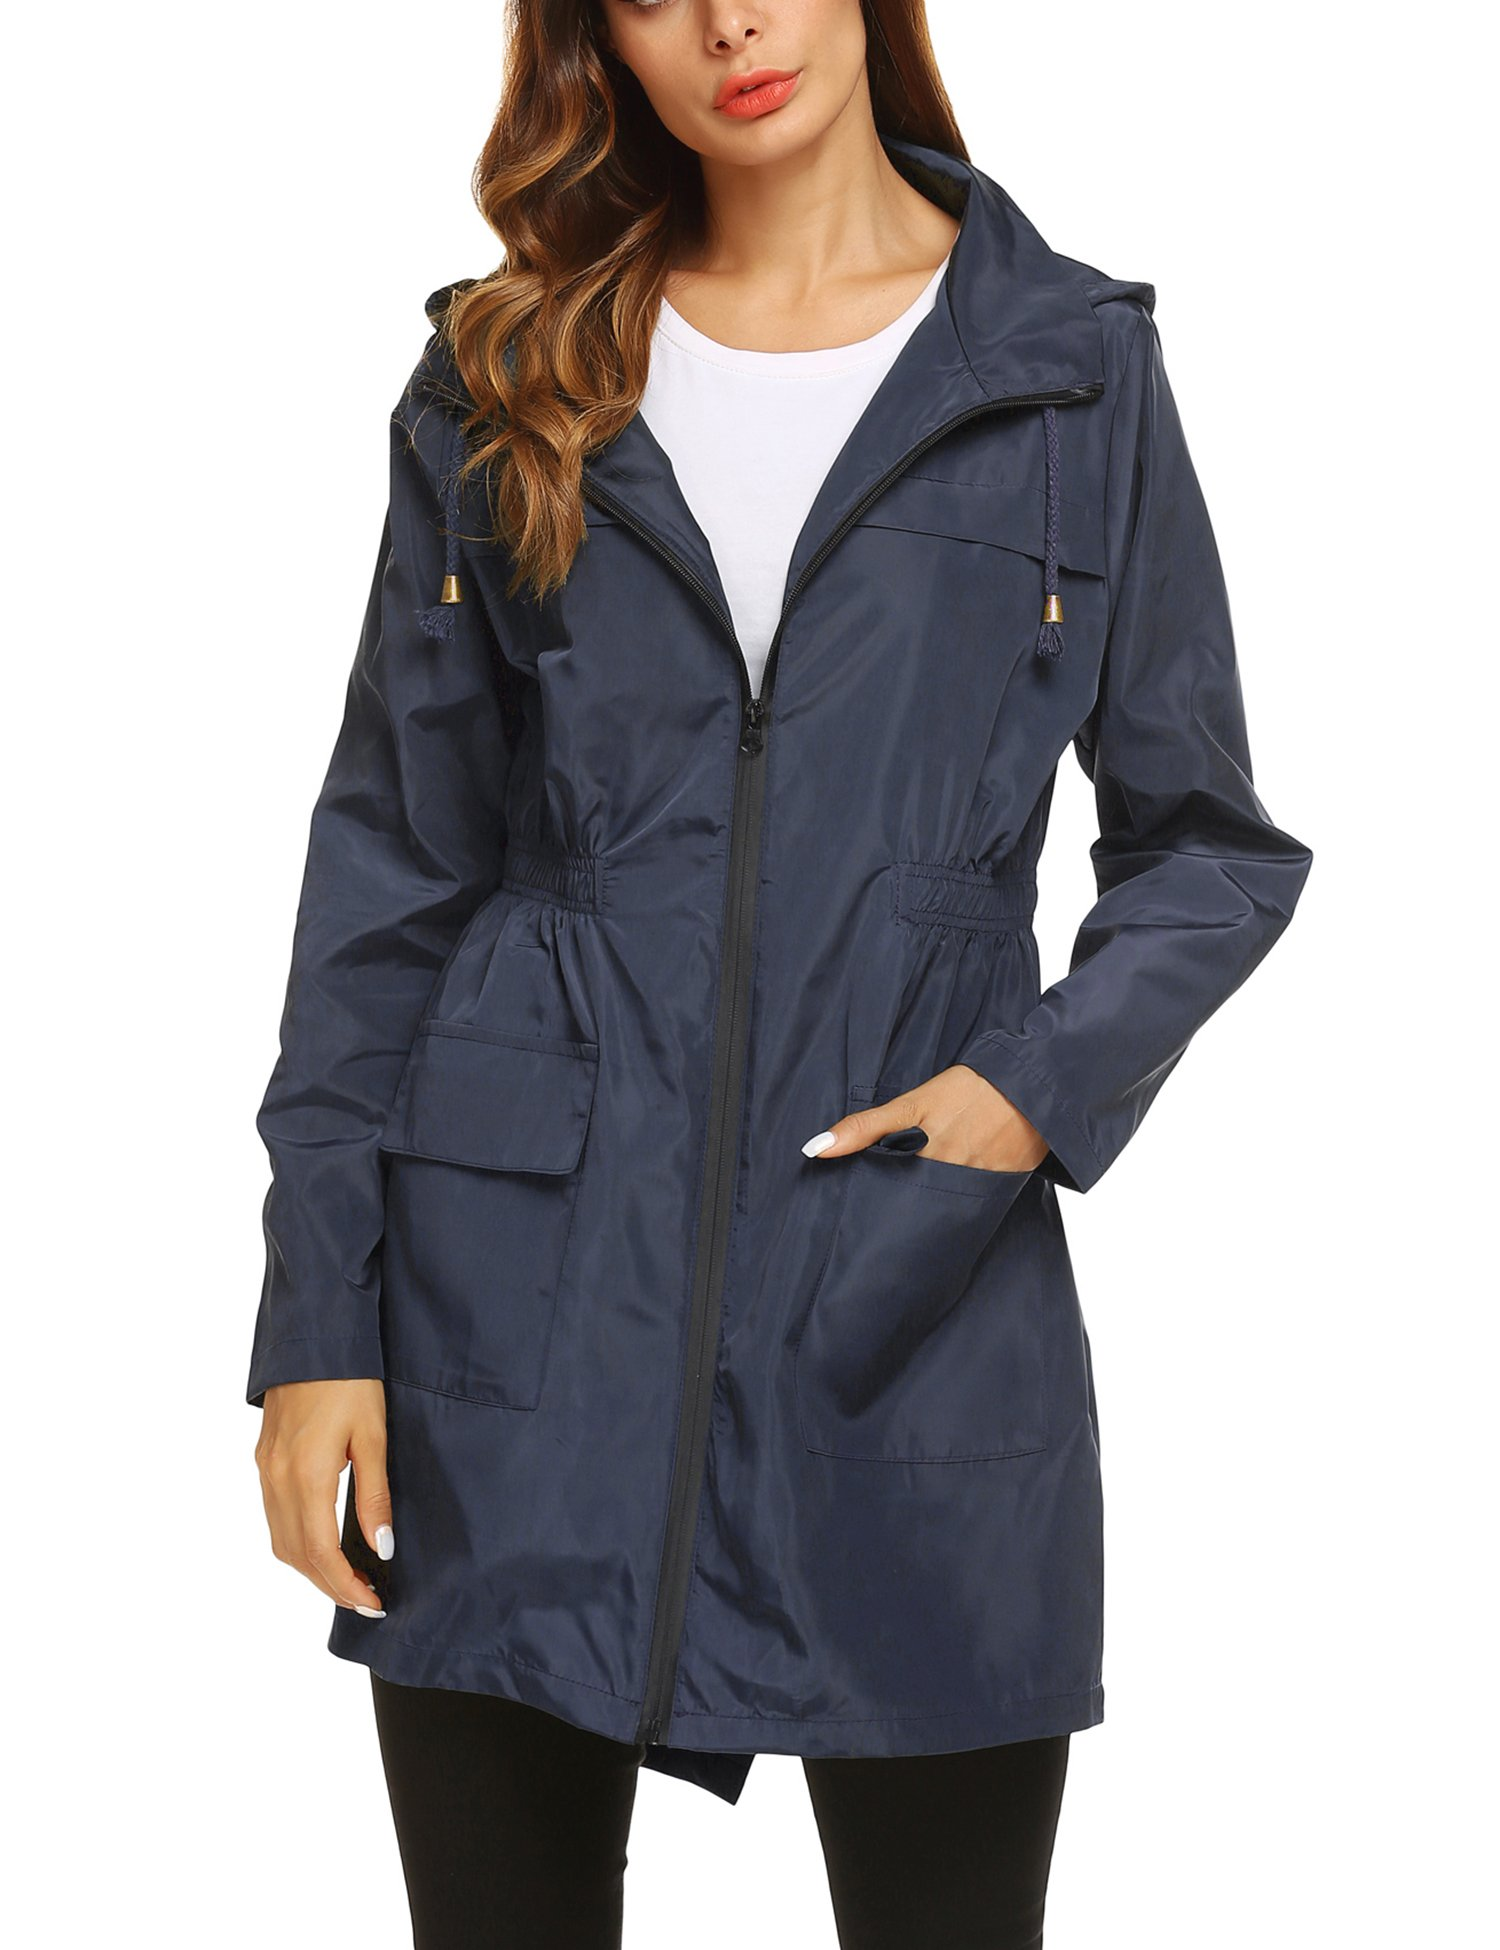 ZHENWEI Womens' Waterproof Lightweight Trench Raincoat,Hooded Outdoor Hiking Windbreaker Long Rain Jacket